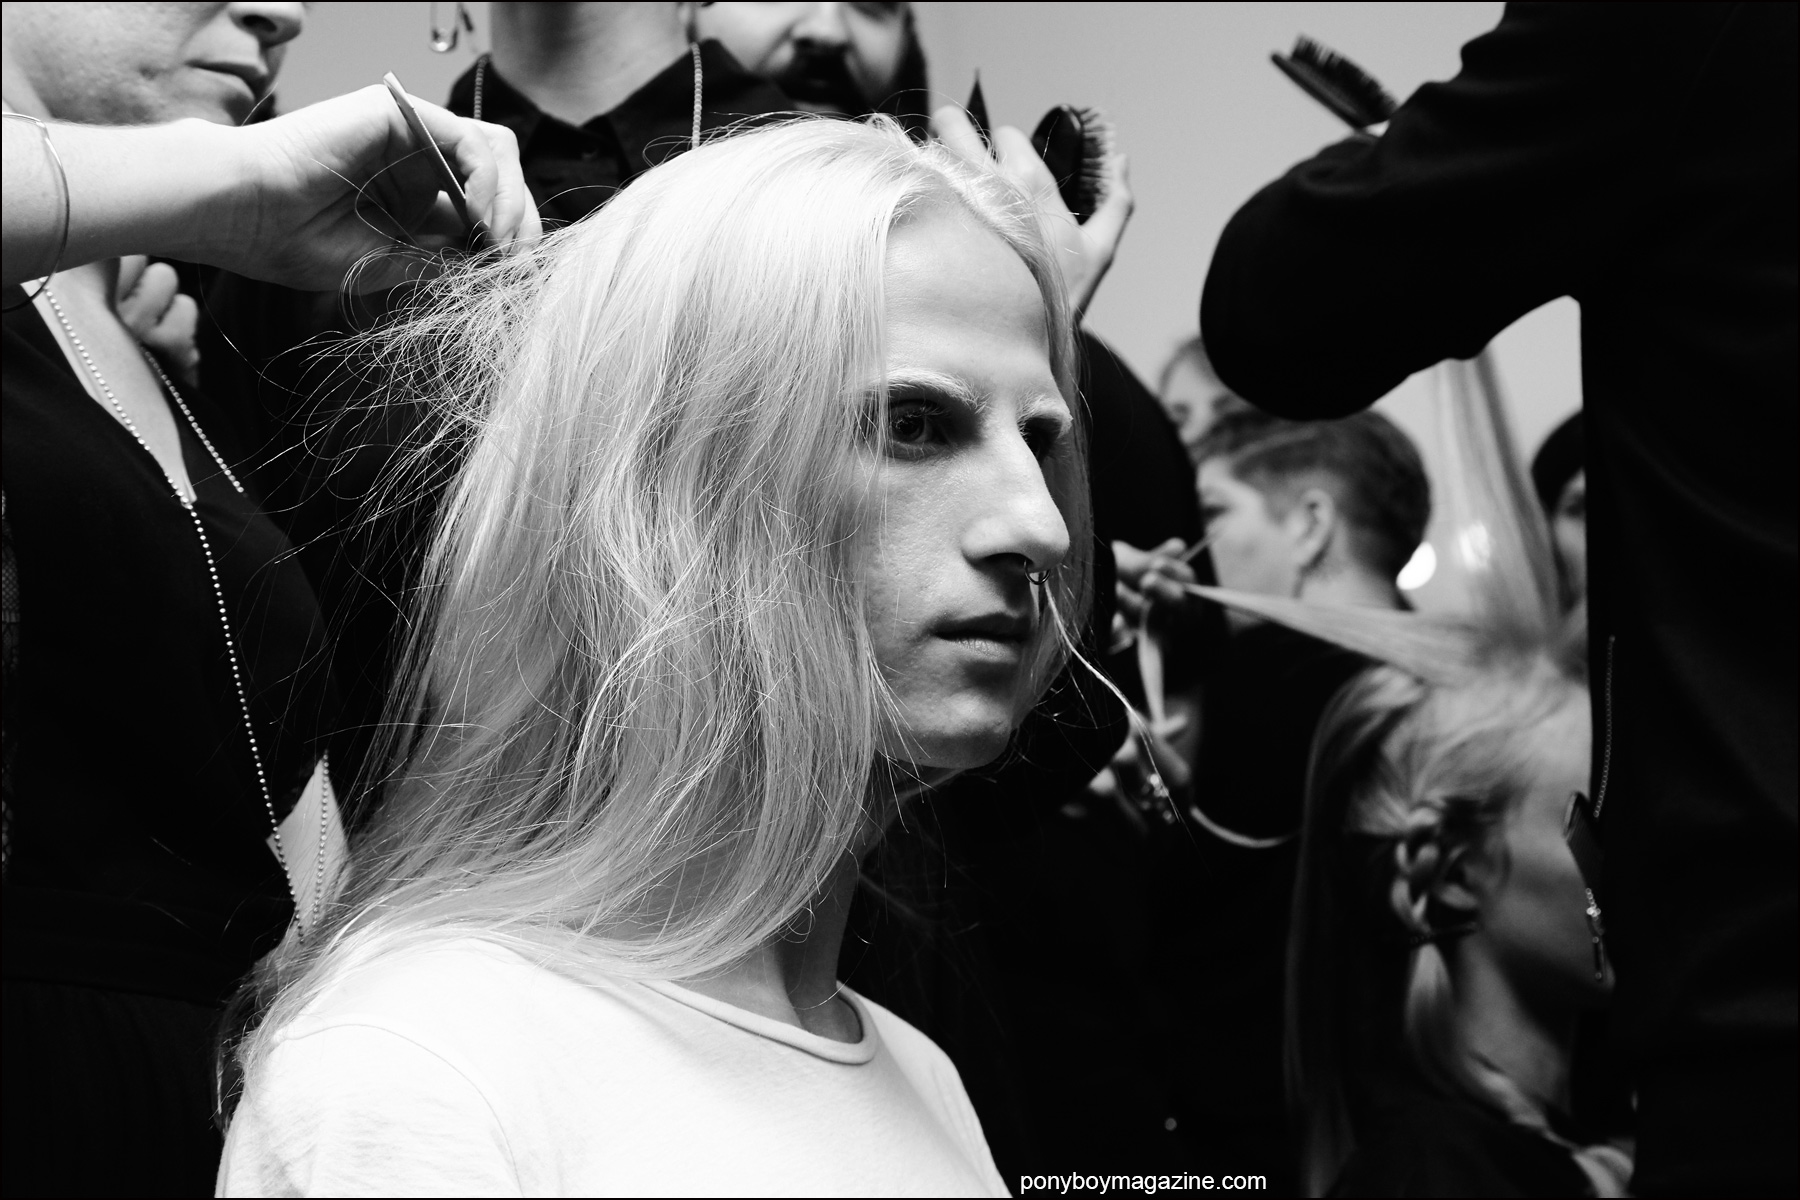 Long-haired male model photographed backstage in hair at the threeASFOUR Spring/Summer 2016 show. Photography by Alexander Thompson for Ponyboy magazine NY.